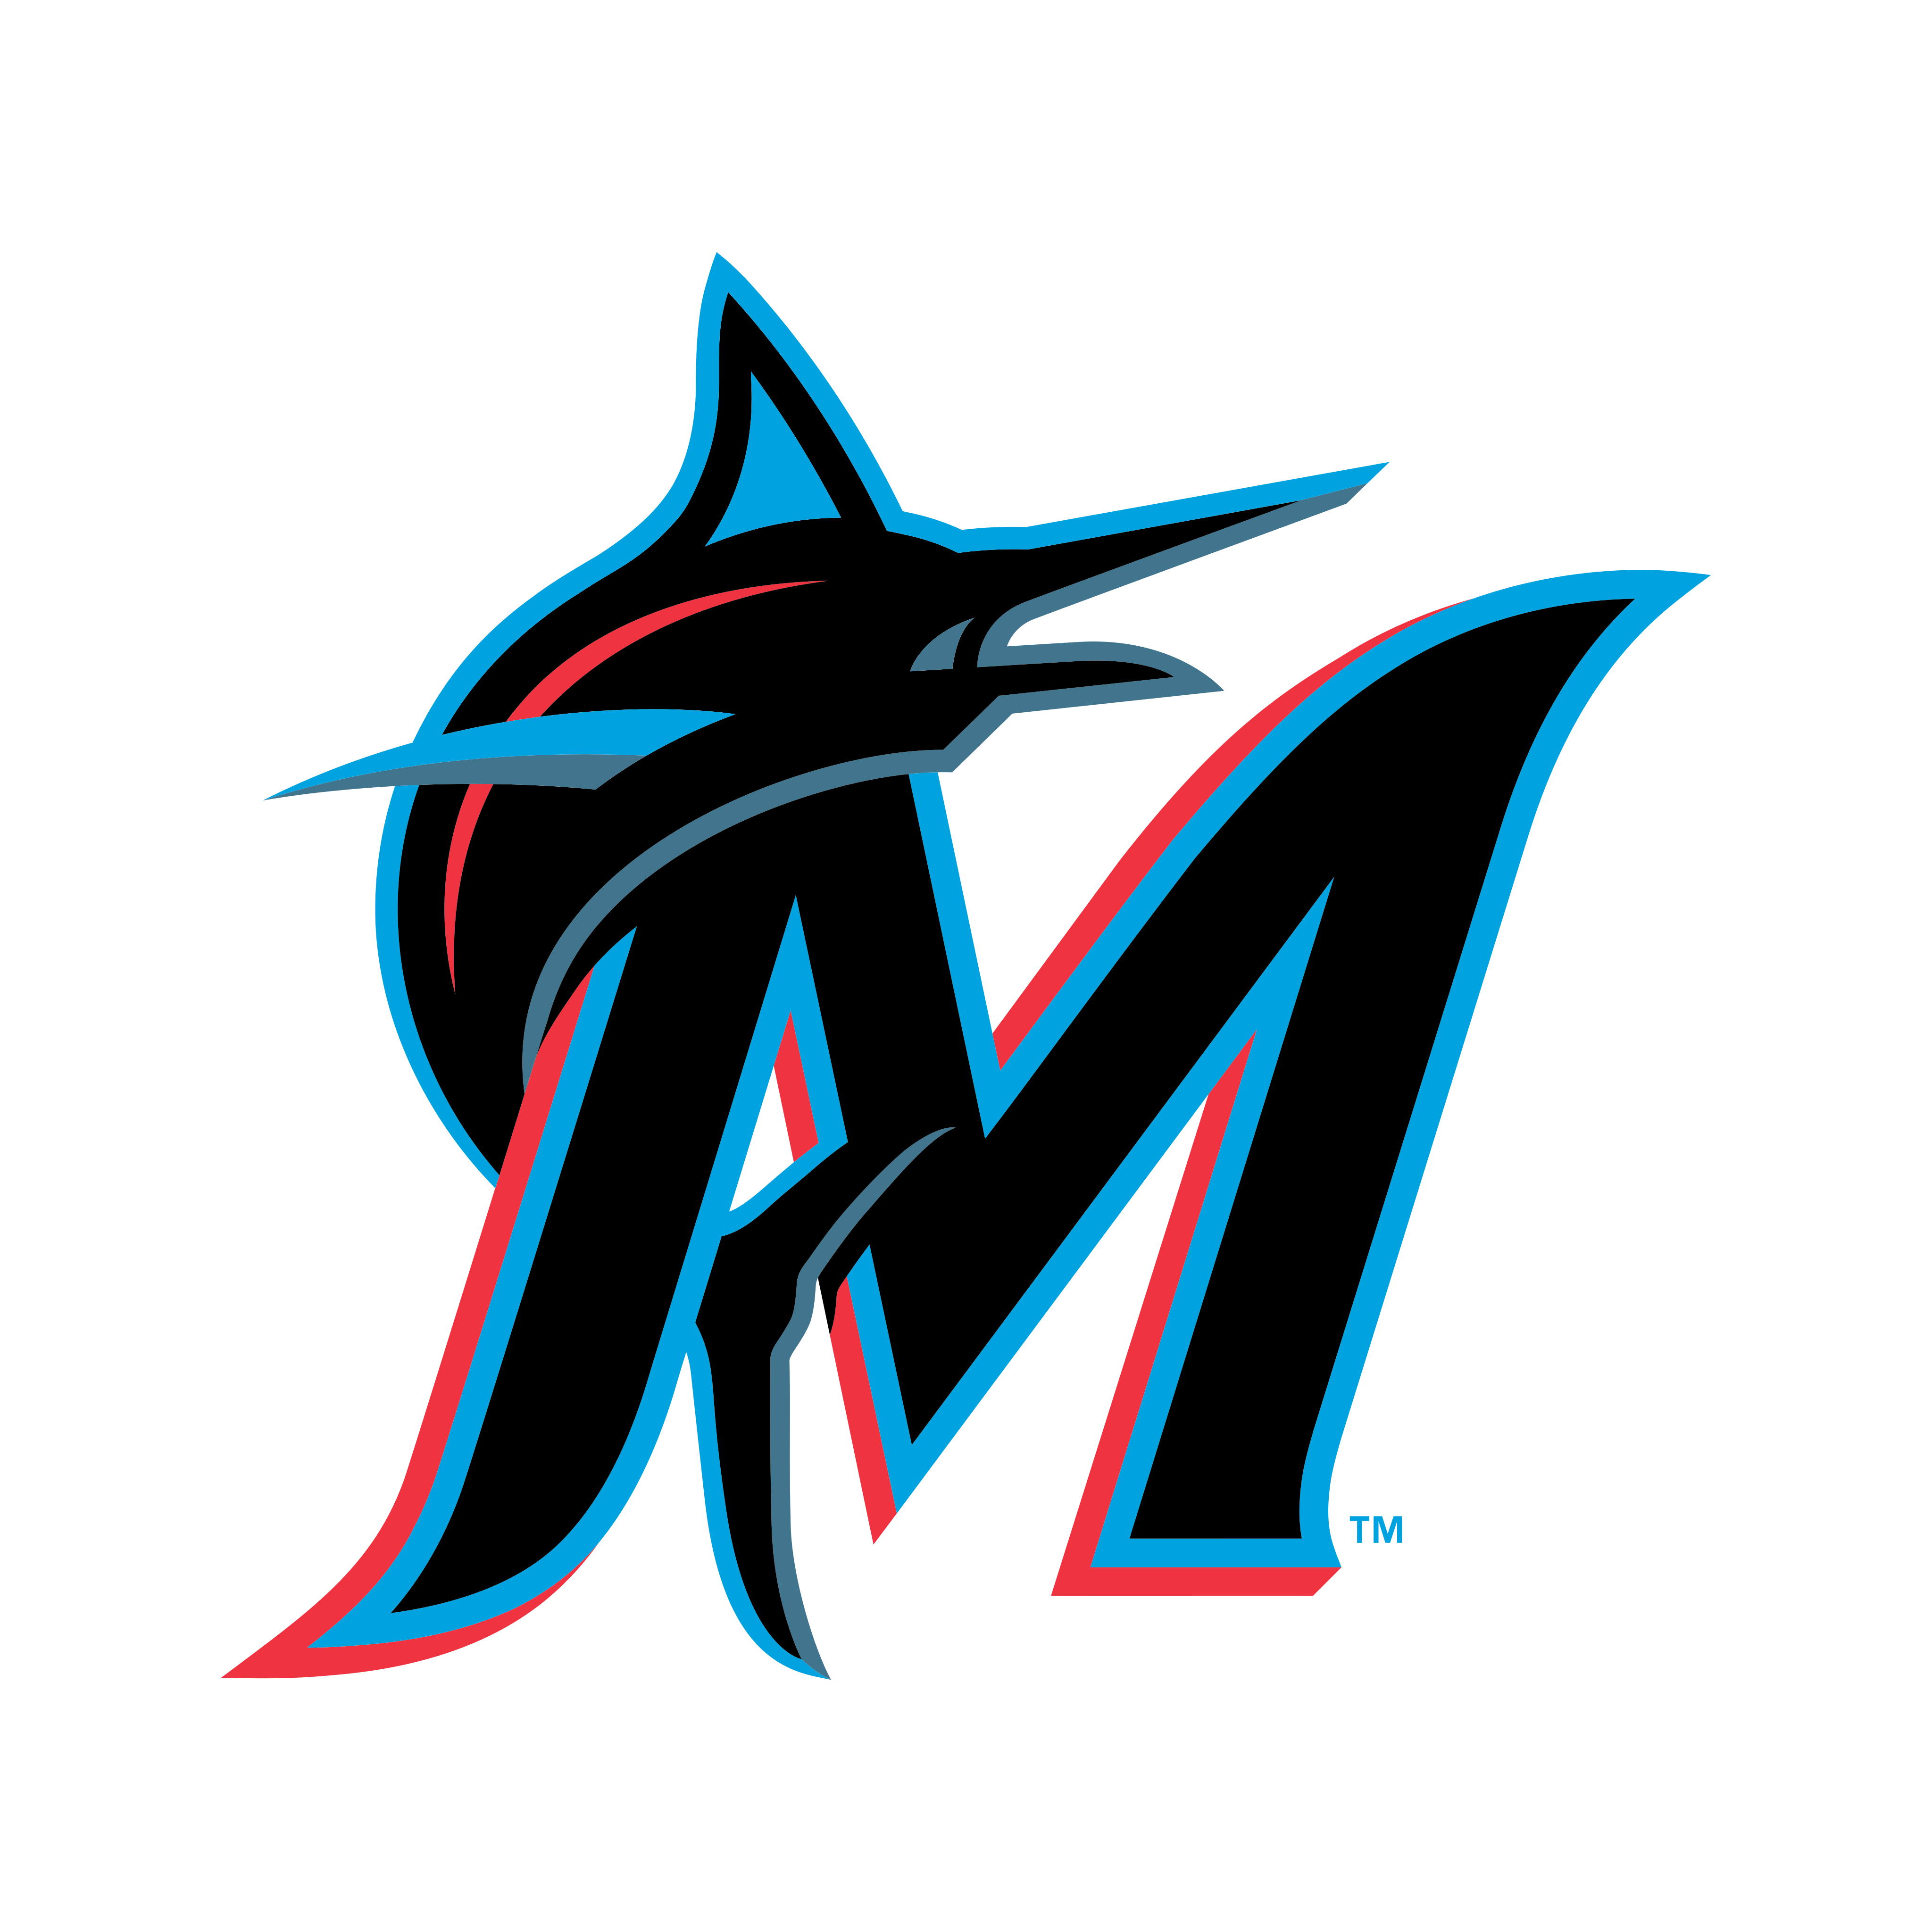 miami marlins logo 0 - Miami Marlins Logo